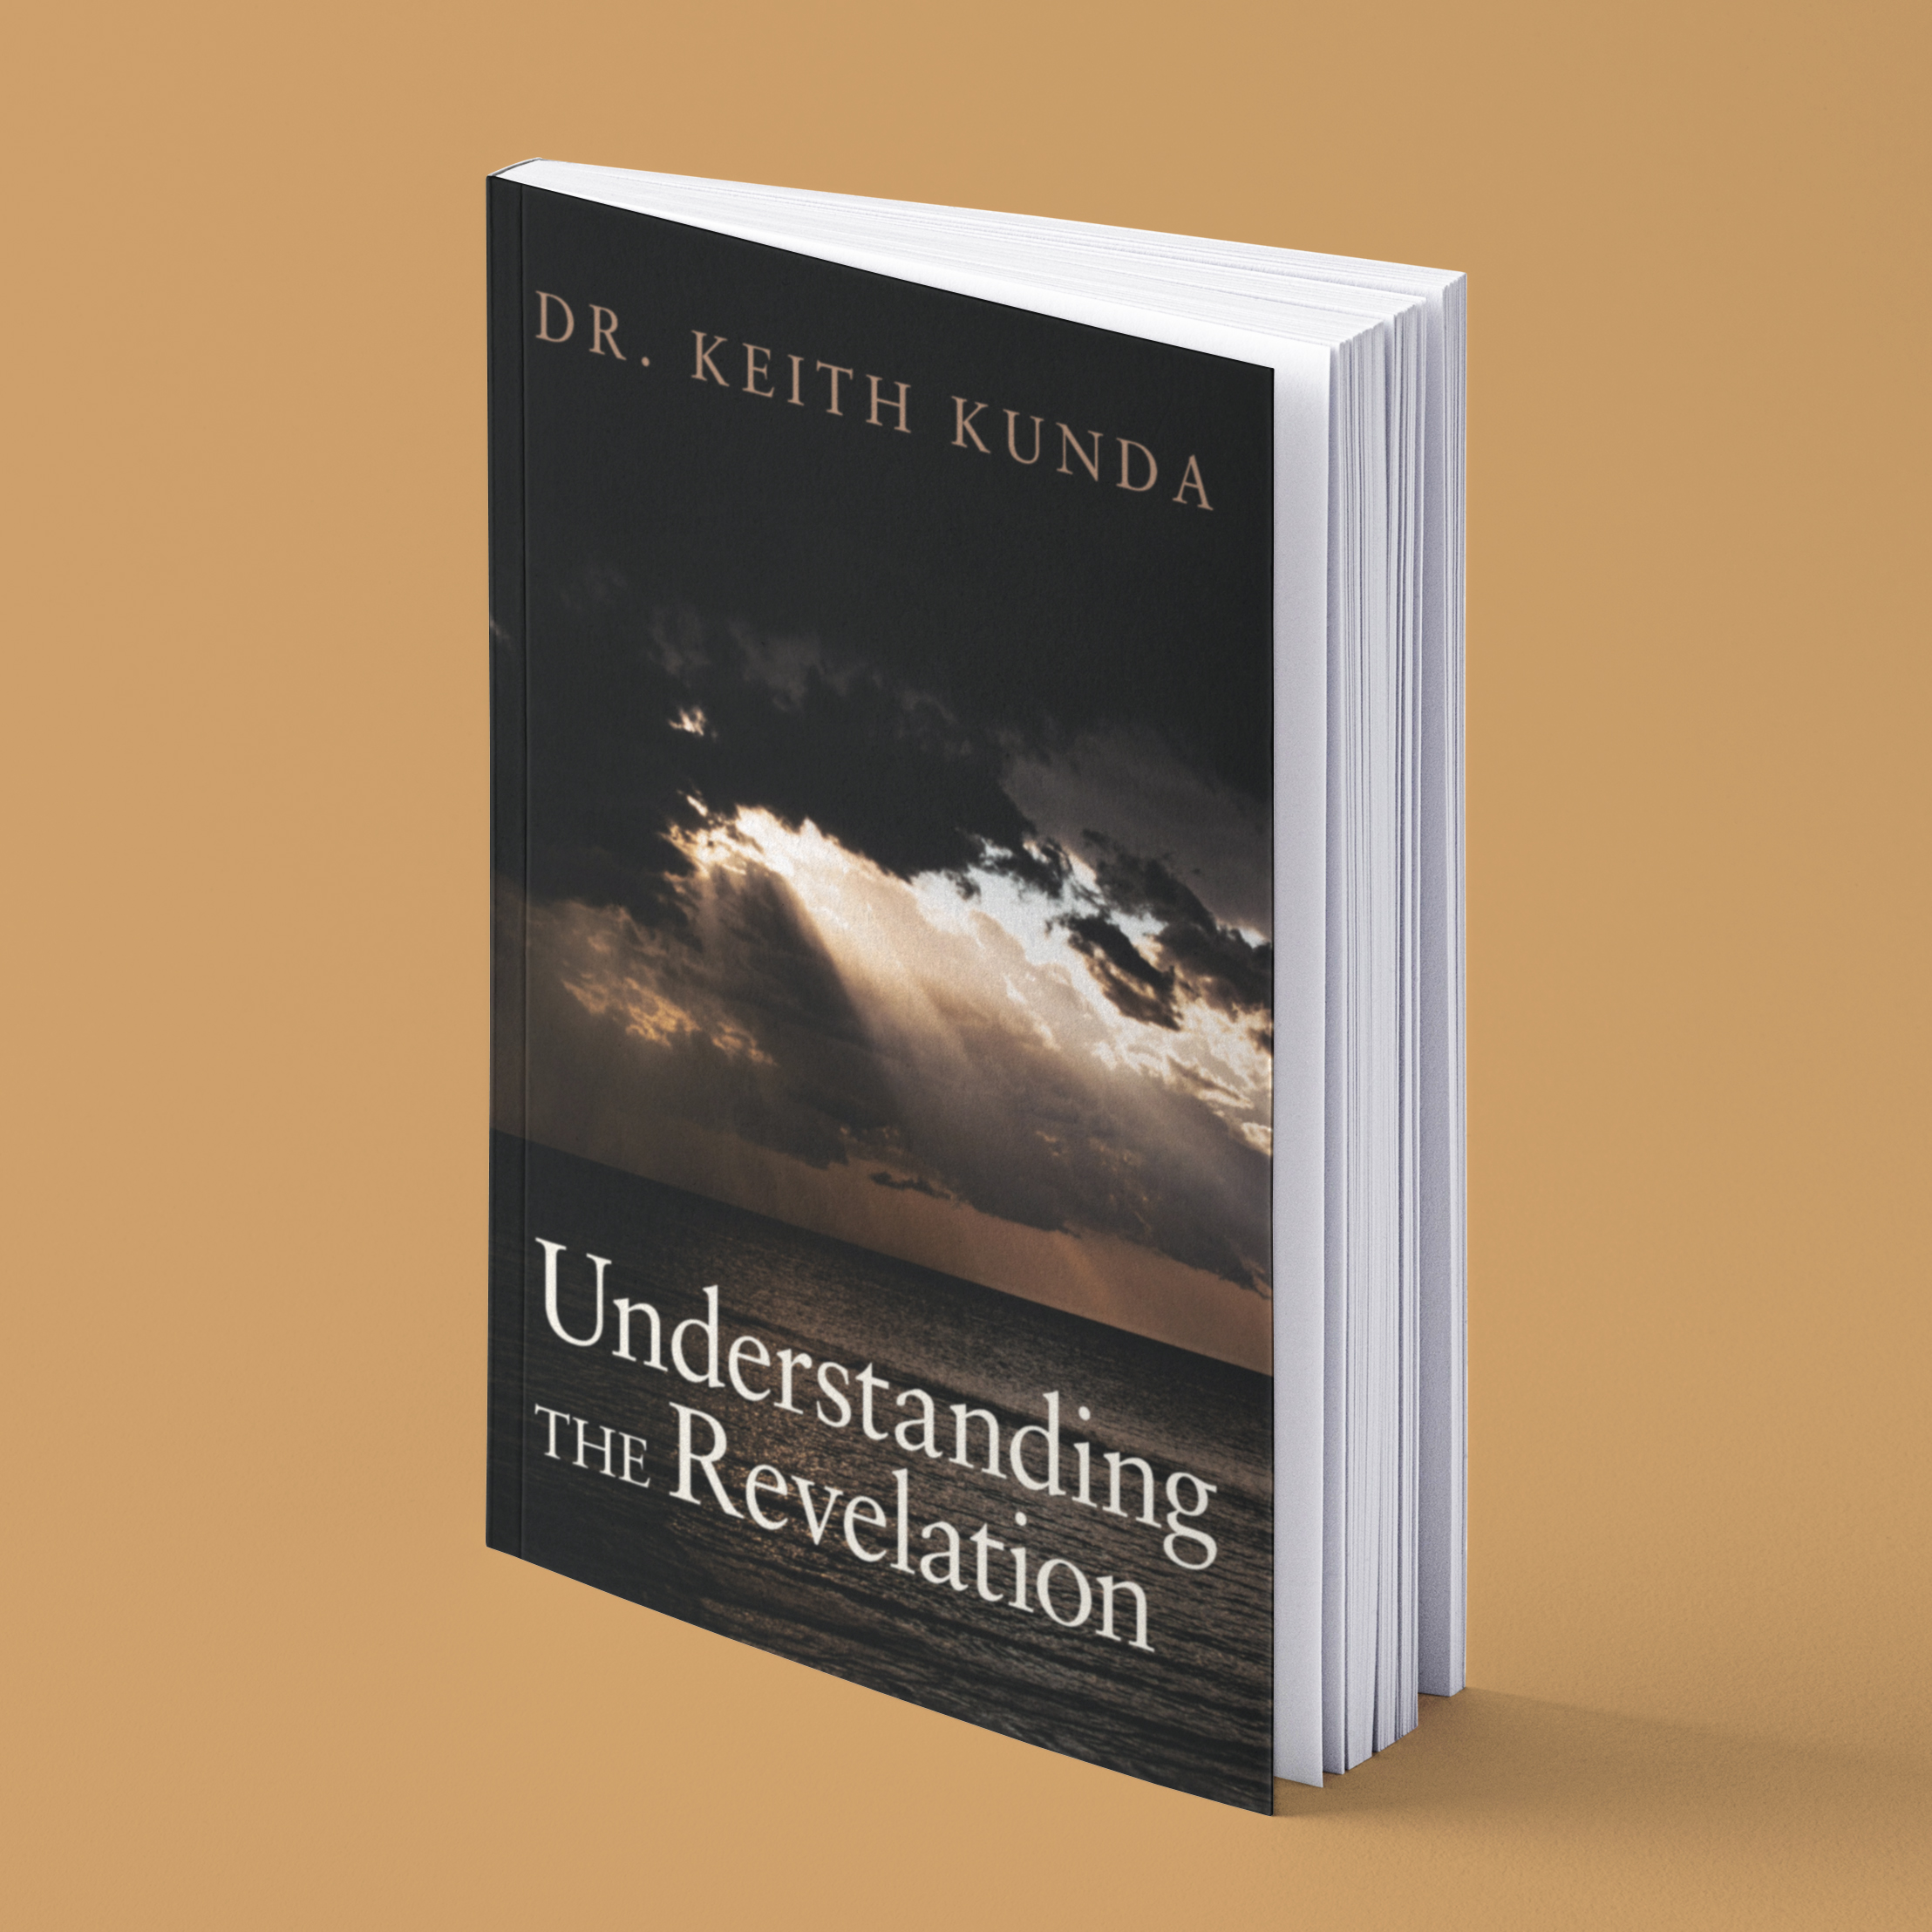 Understanding the Revelation - By Dr. Keith Kunda